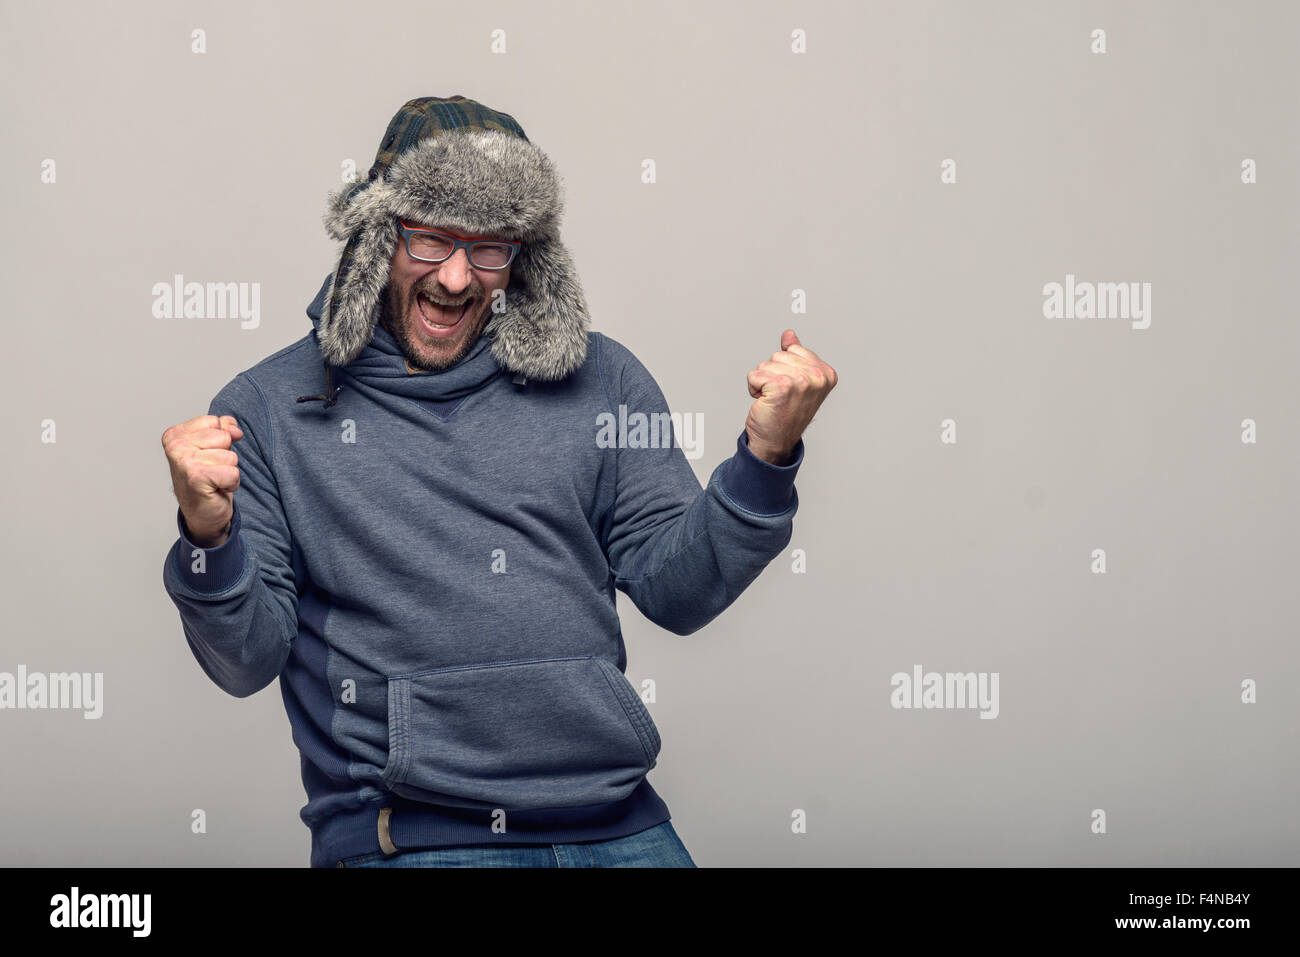 Happy man wearing glasses and a winter hat cheering and celebrating raising his clenched fists in the air with an exultant expre Stock Photo